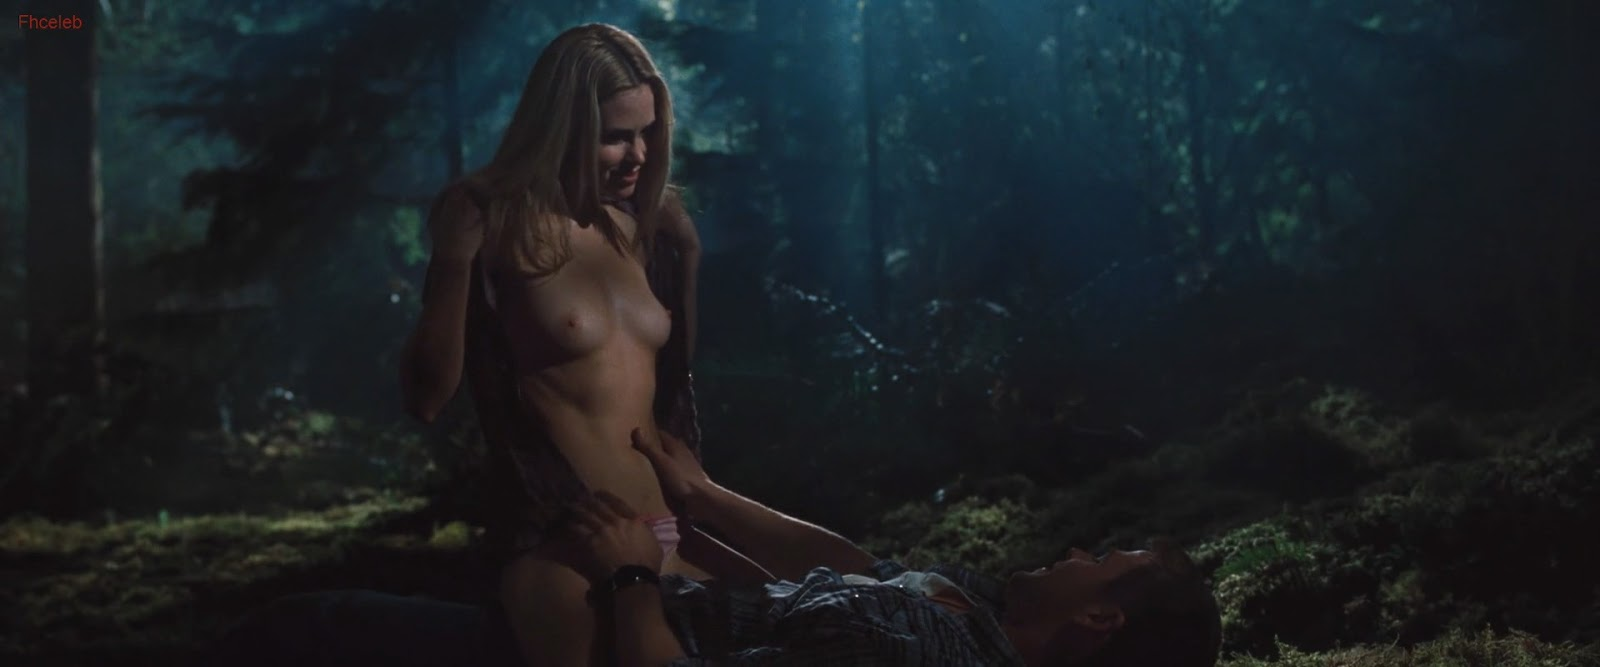 Dark elf story porn sexual clips